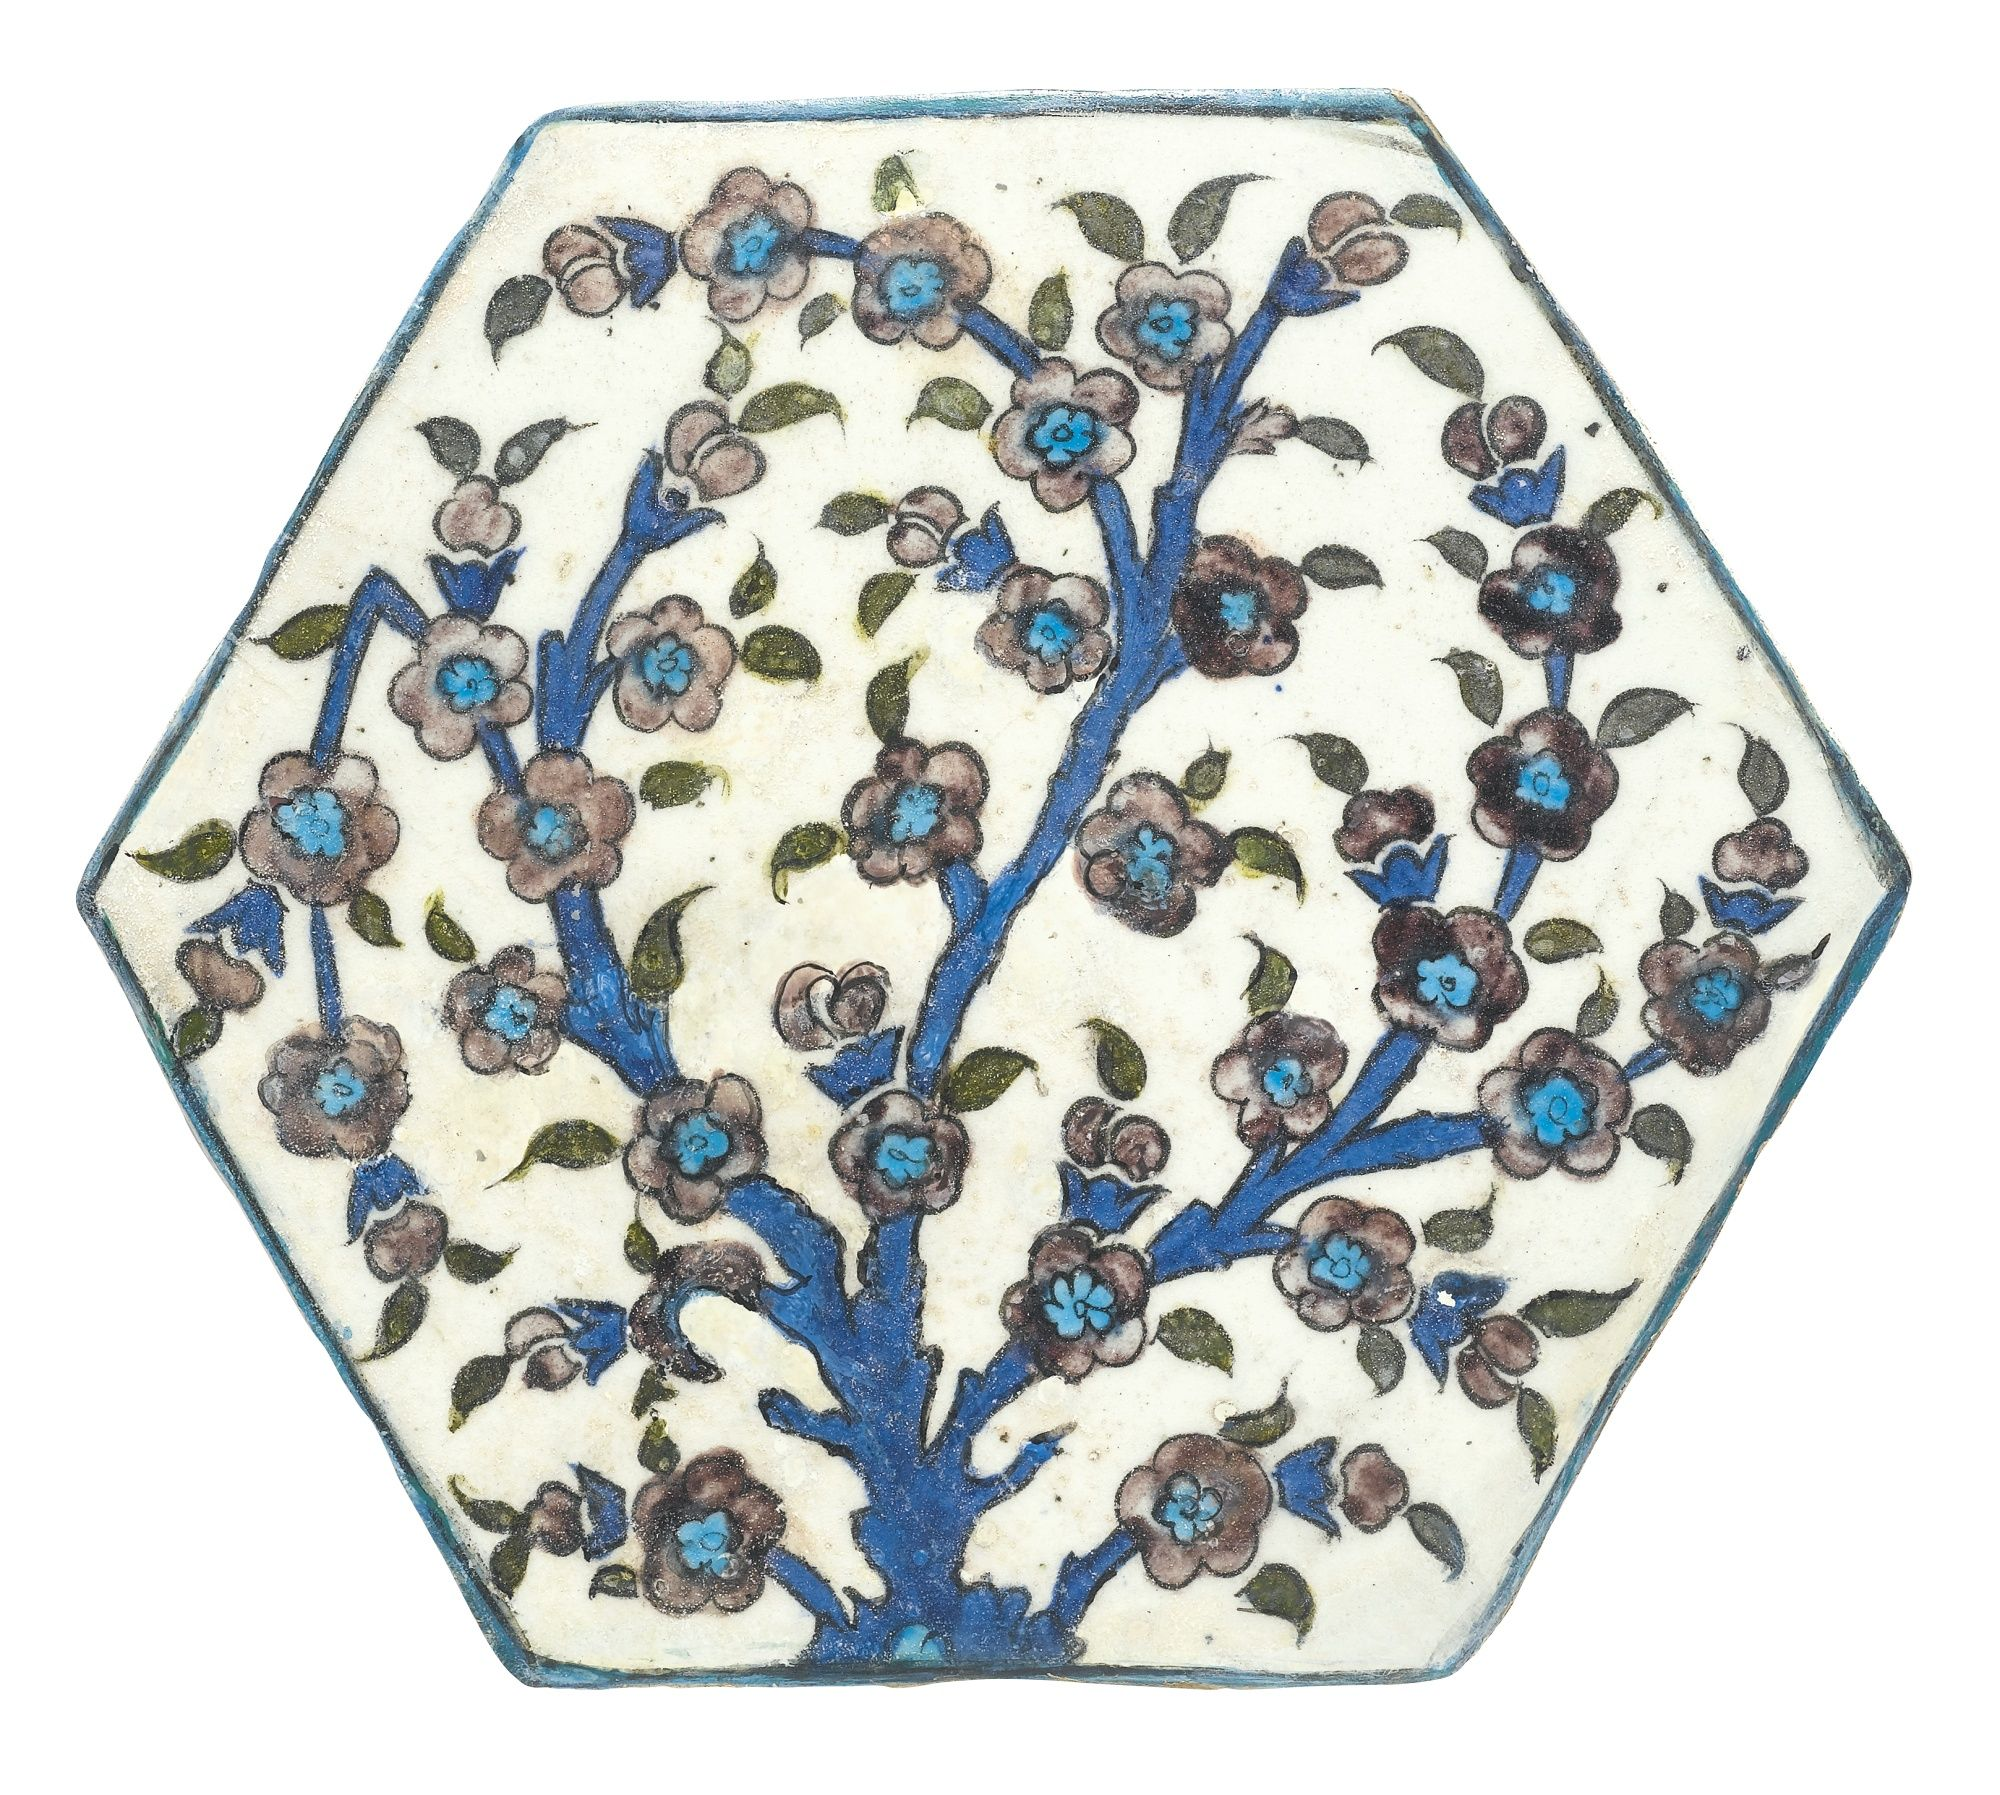 An Iznik 'Damascus style' hexagonal tile, Turkey, 16th century | Another tile from the same series is in the Sadberk Hanim Museum (see H. Bilgi, Dance of Fire: Iznik tiles and ceramics in the Sadberk Hanim Museum and Omer M. Koç Collections, Istanbul, 2009, p.17, no.6).